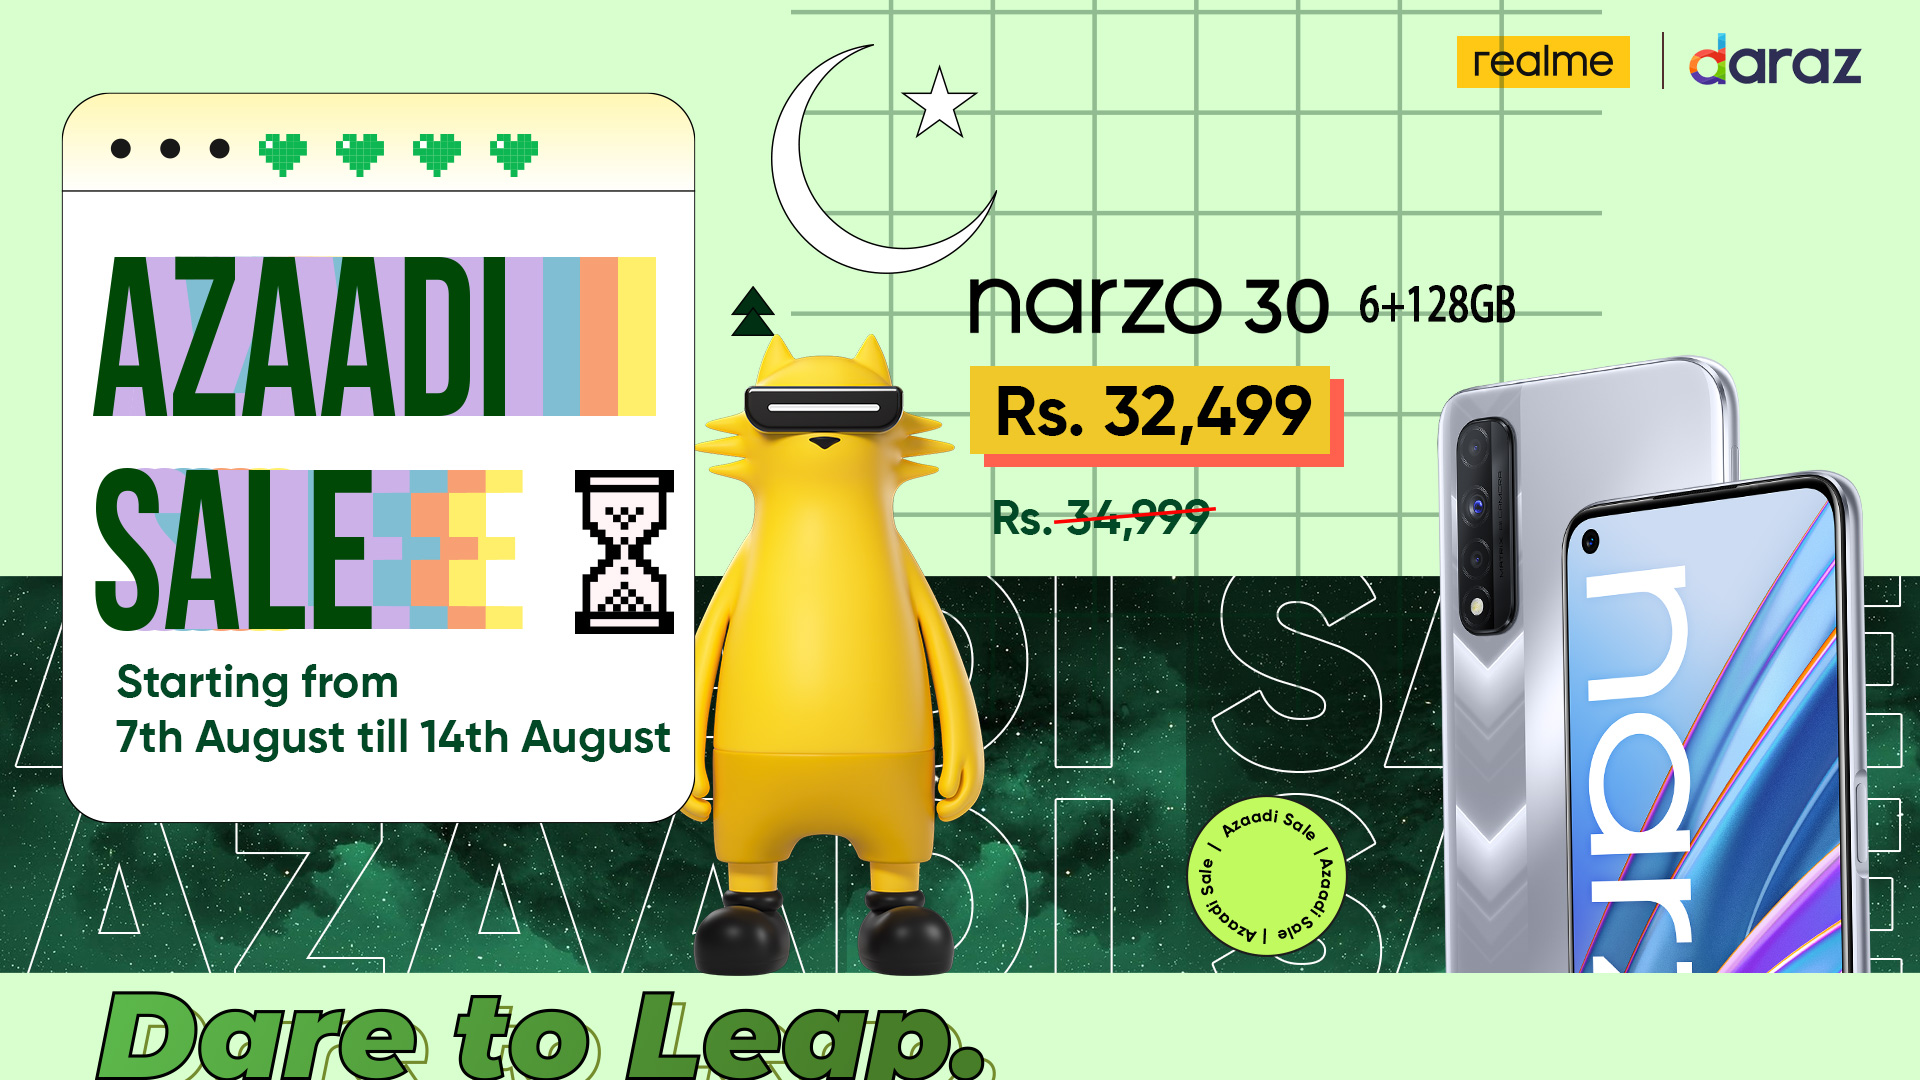 Artwork - Celebrate real Azaadi with realme Azaadi Sale 2021 with up to 30% in Discounts